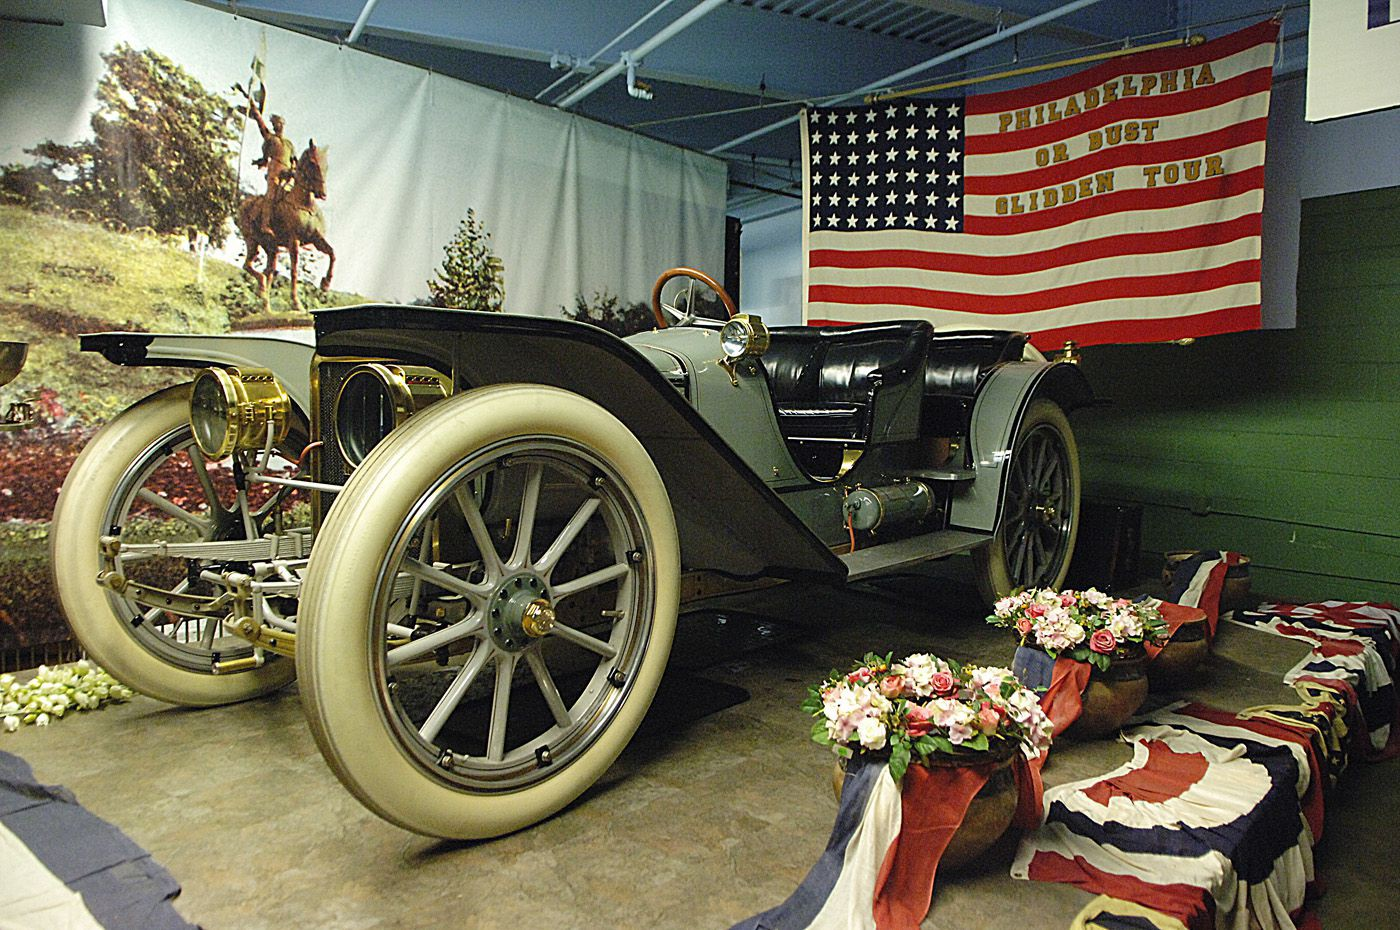 Welcome to hot rod heaven – Northeast Times